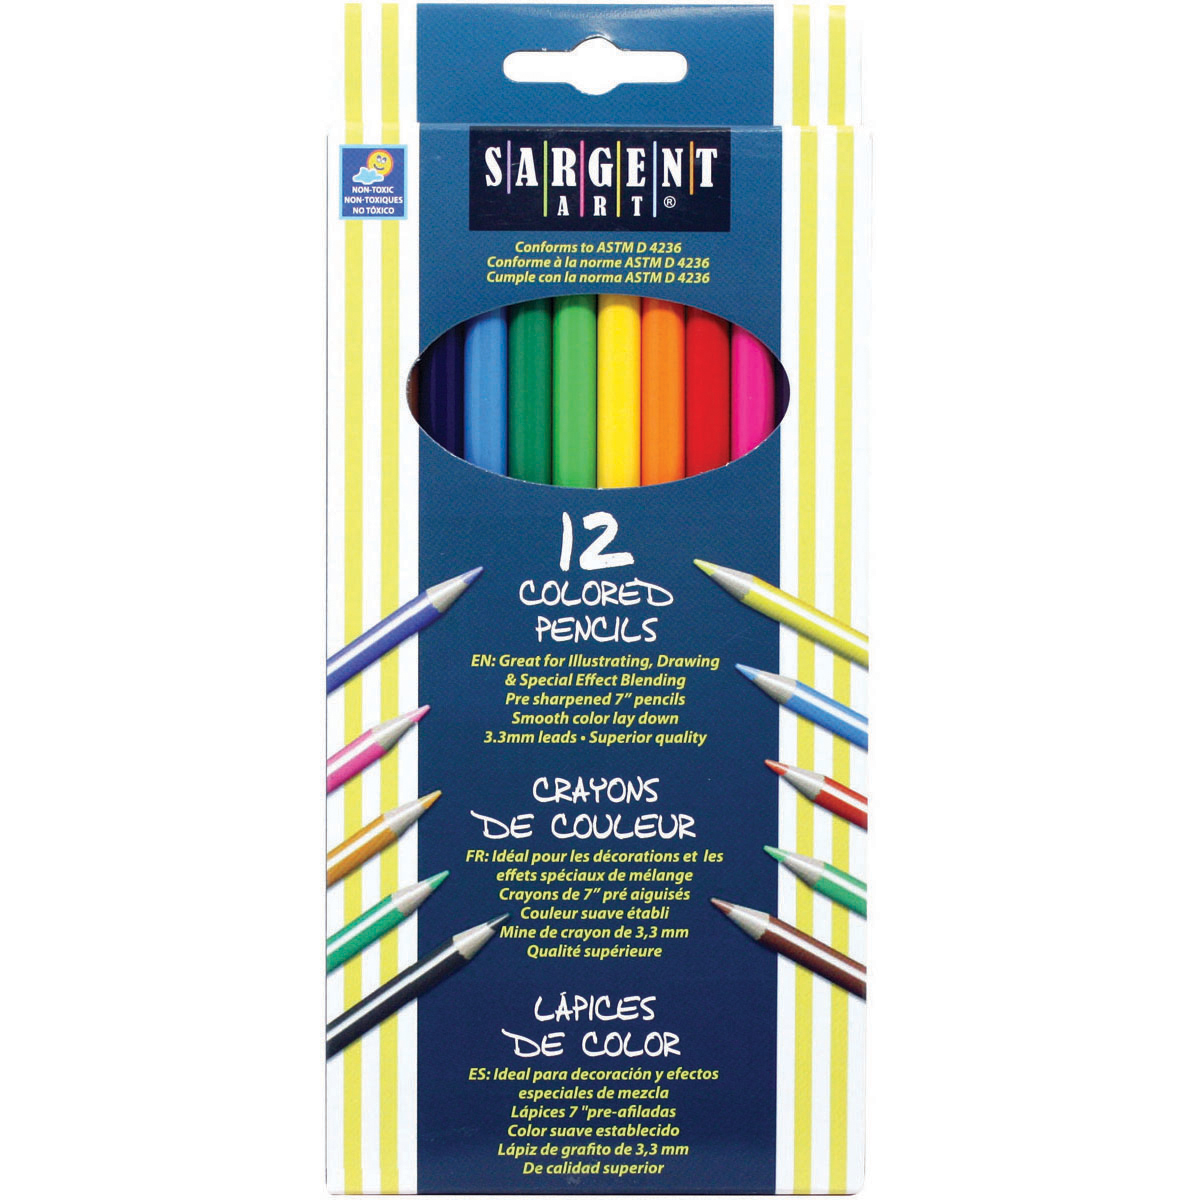 SARGENT ART COLORED PENCILS 12/SET